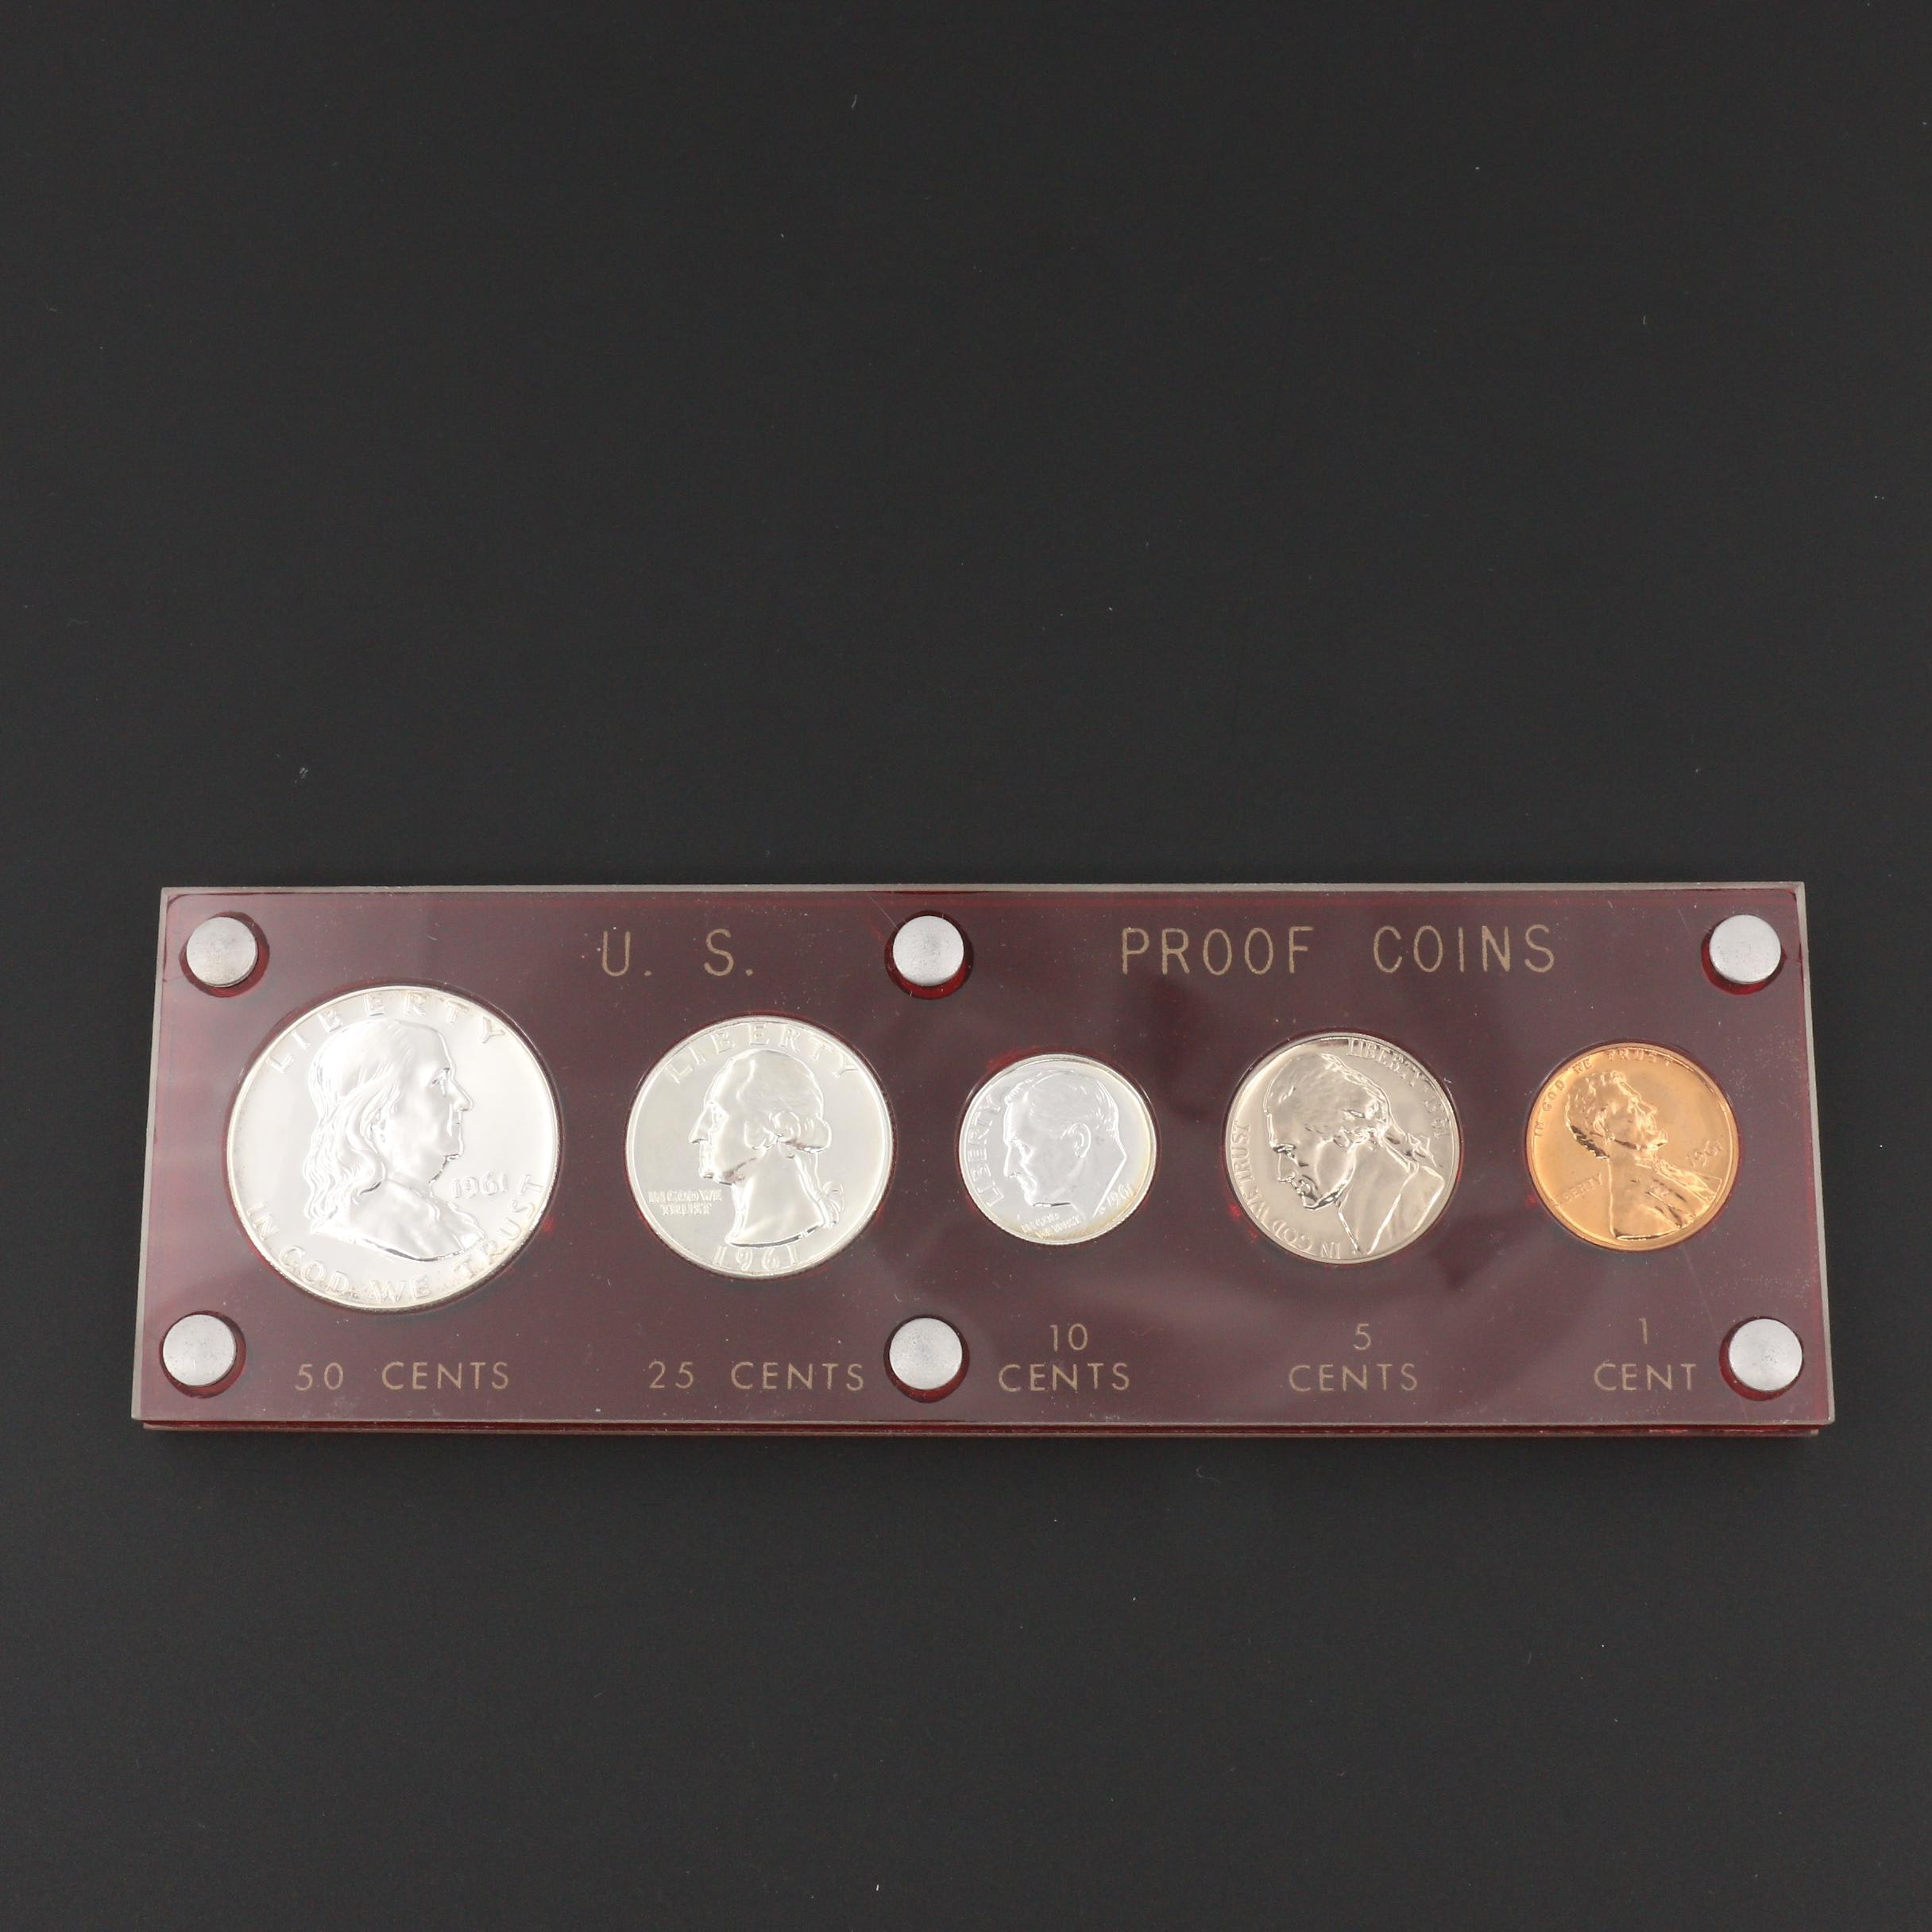 A 1961 U.S. Type Coin Proof Set